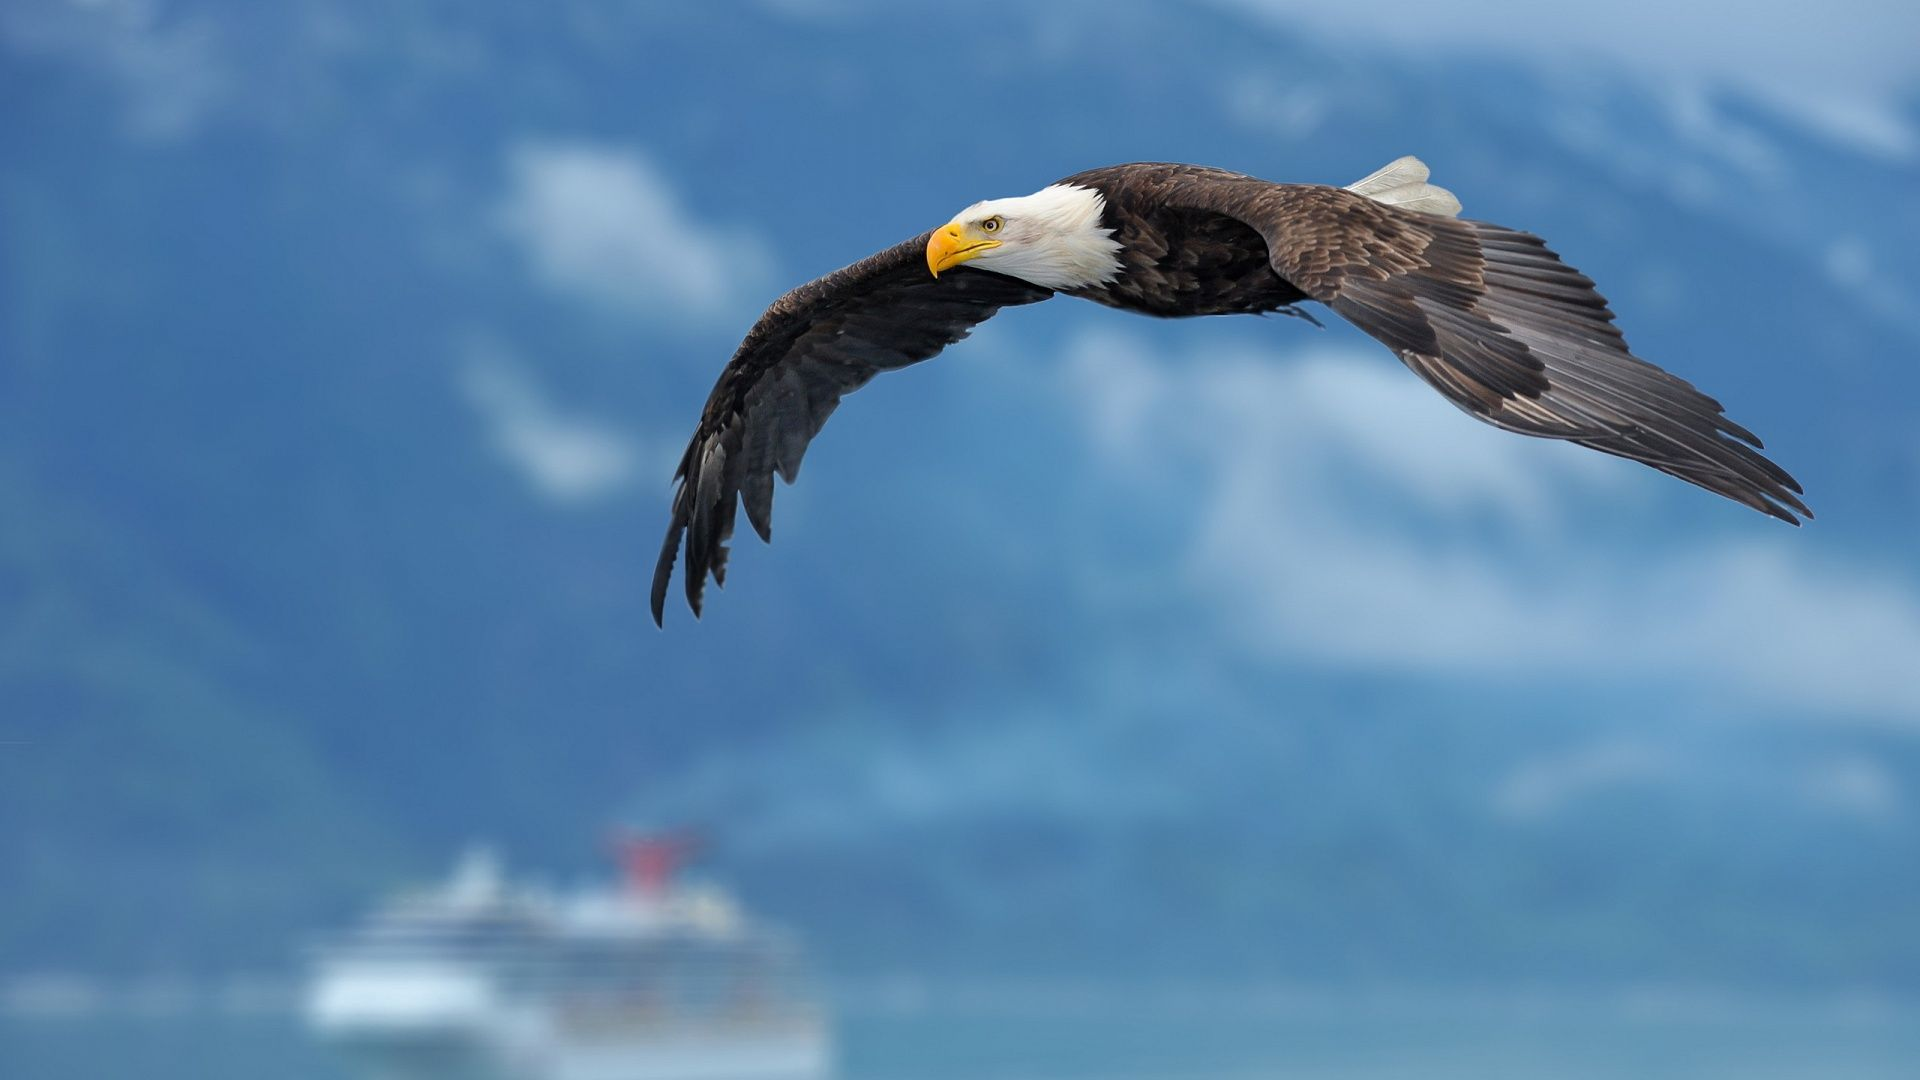 High Resolution Photo Of An Eagle In Flight